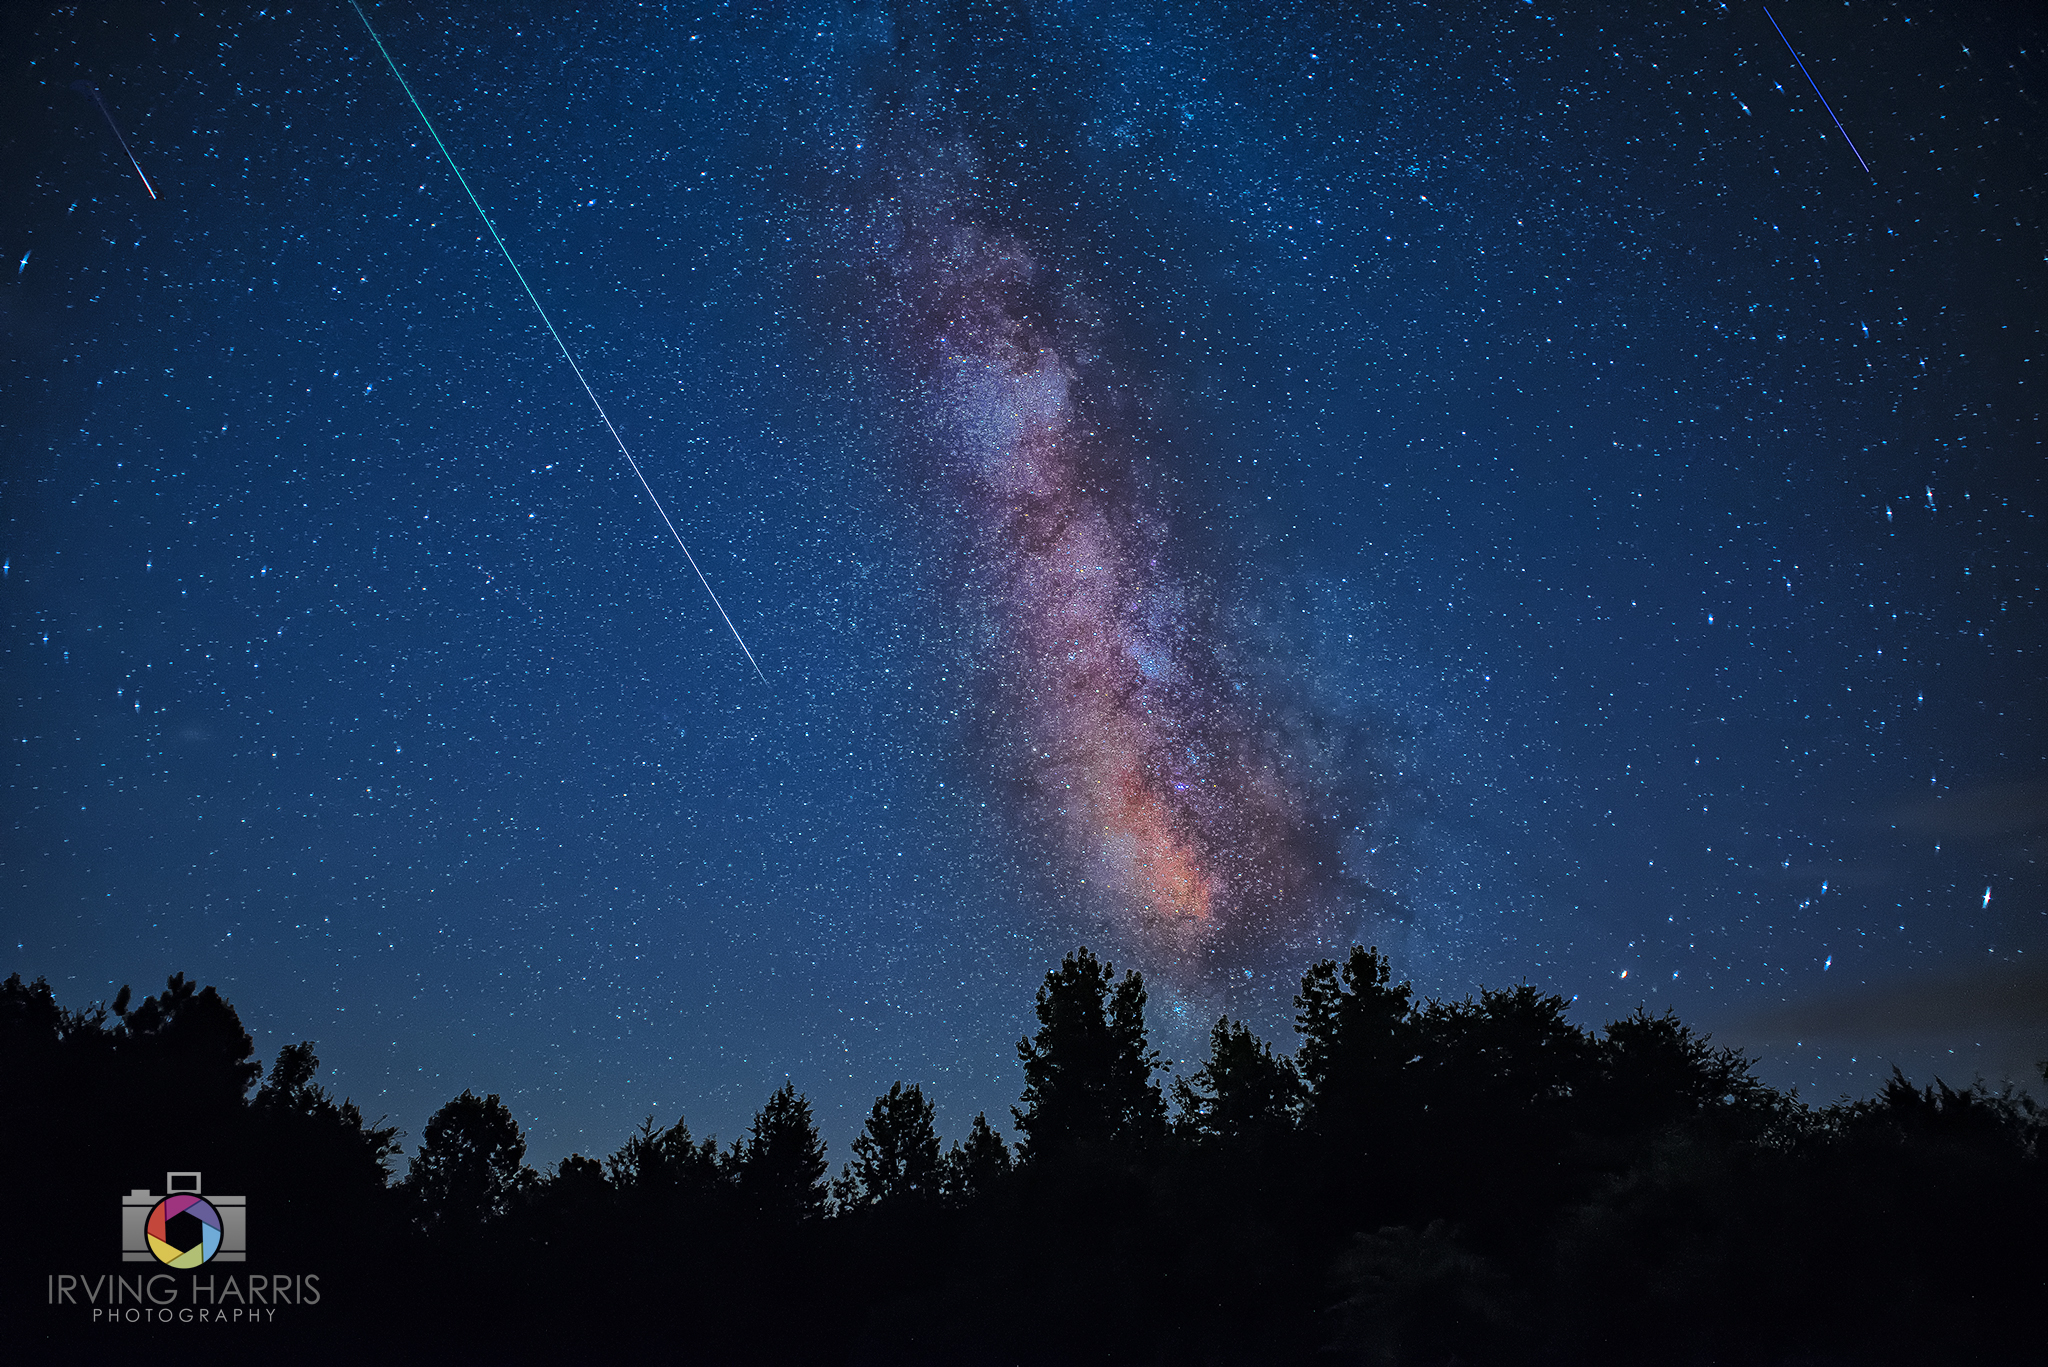 Perseid MeteorShower